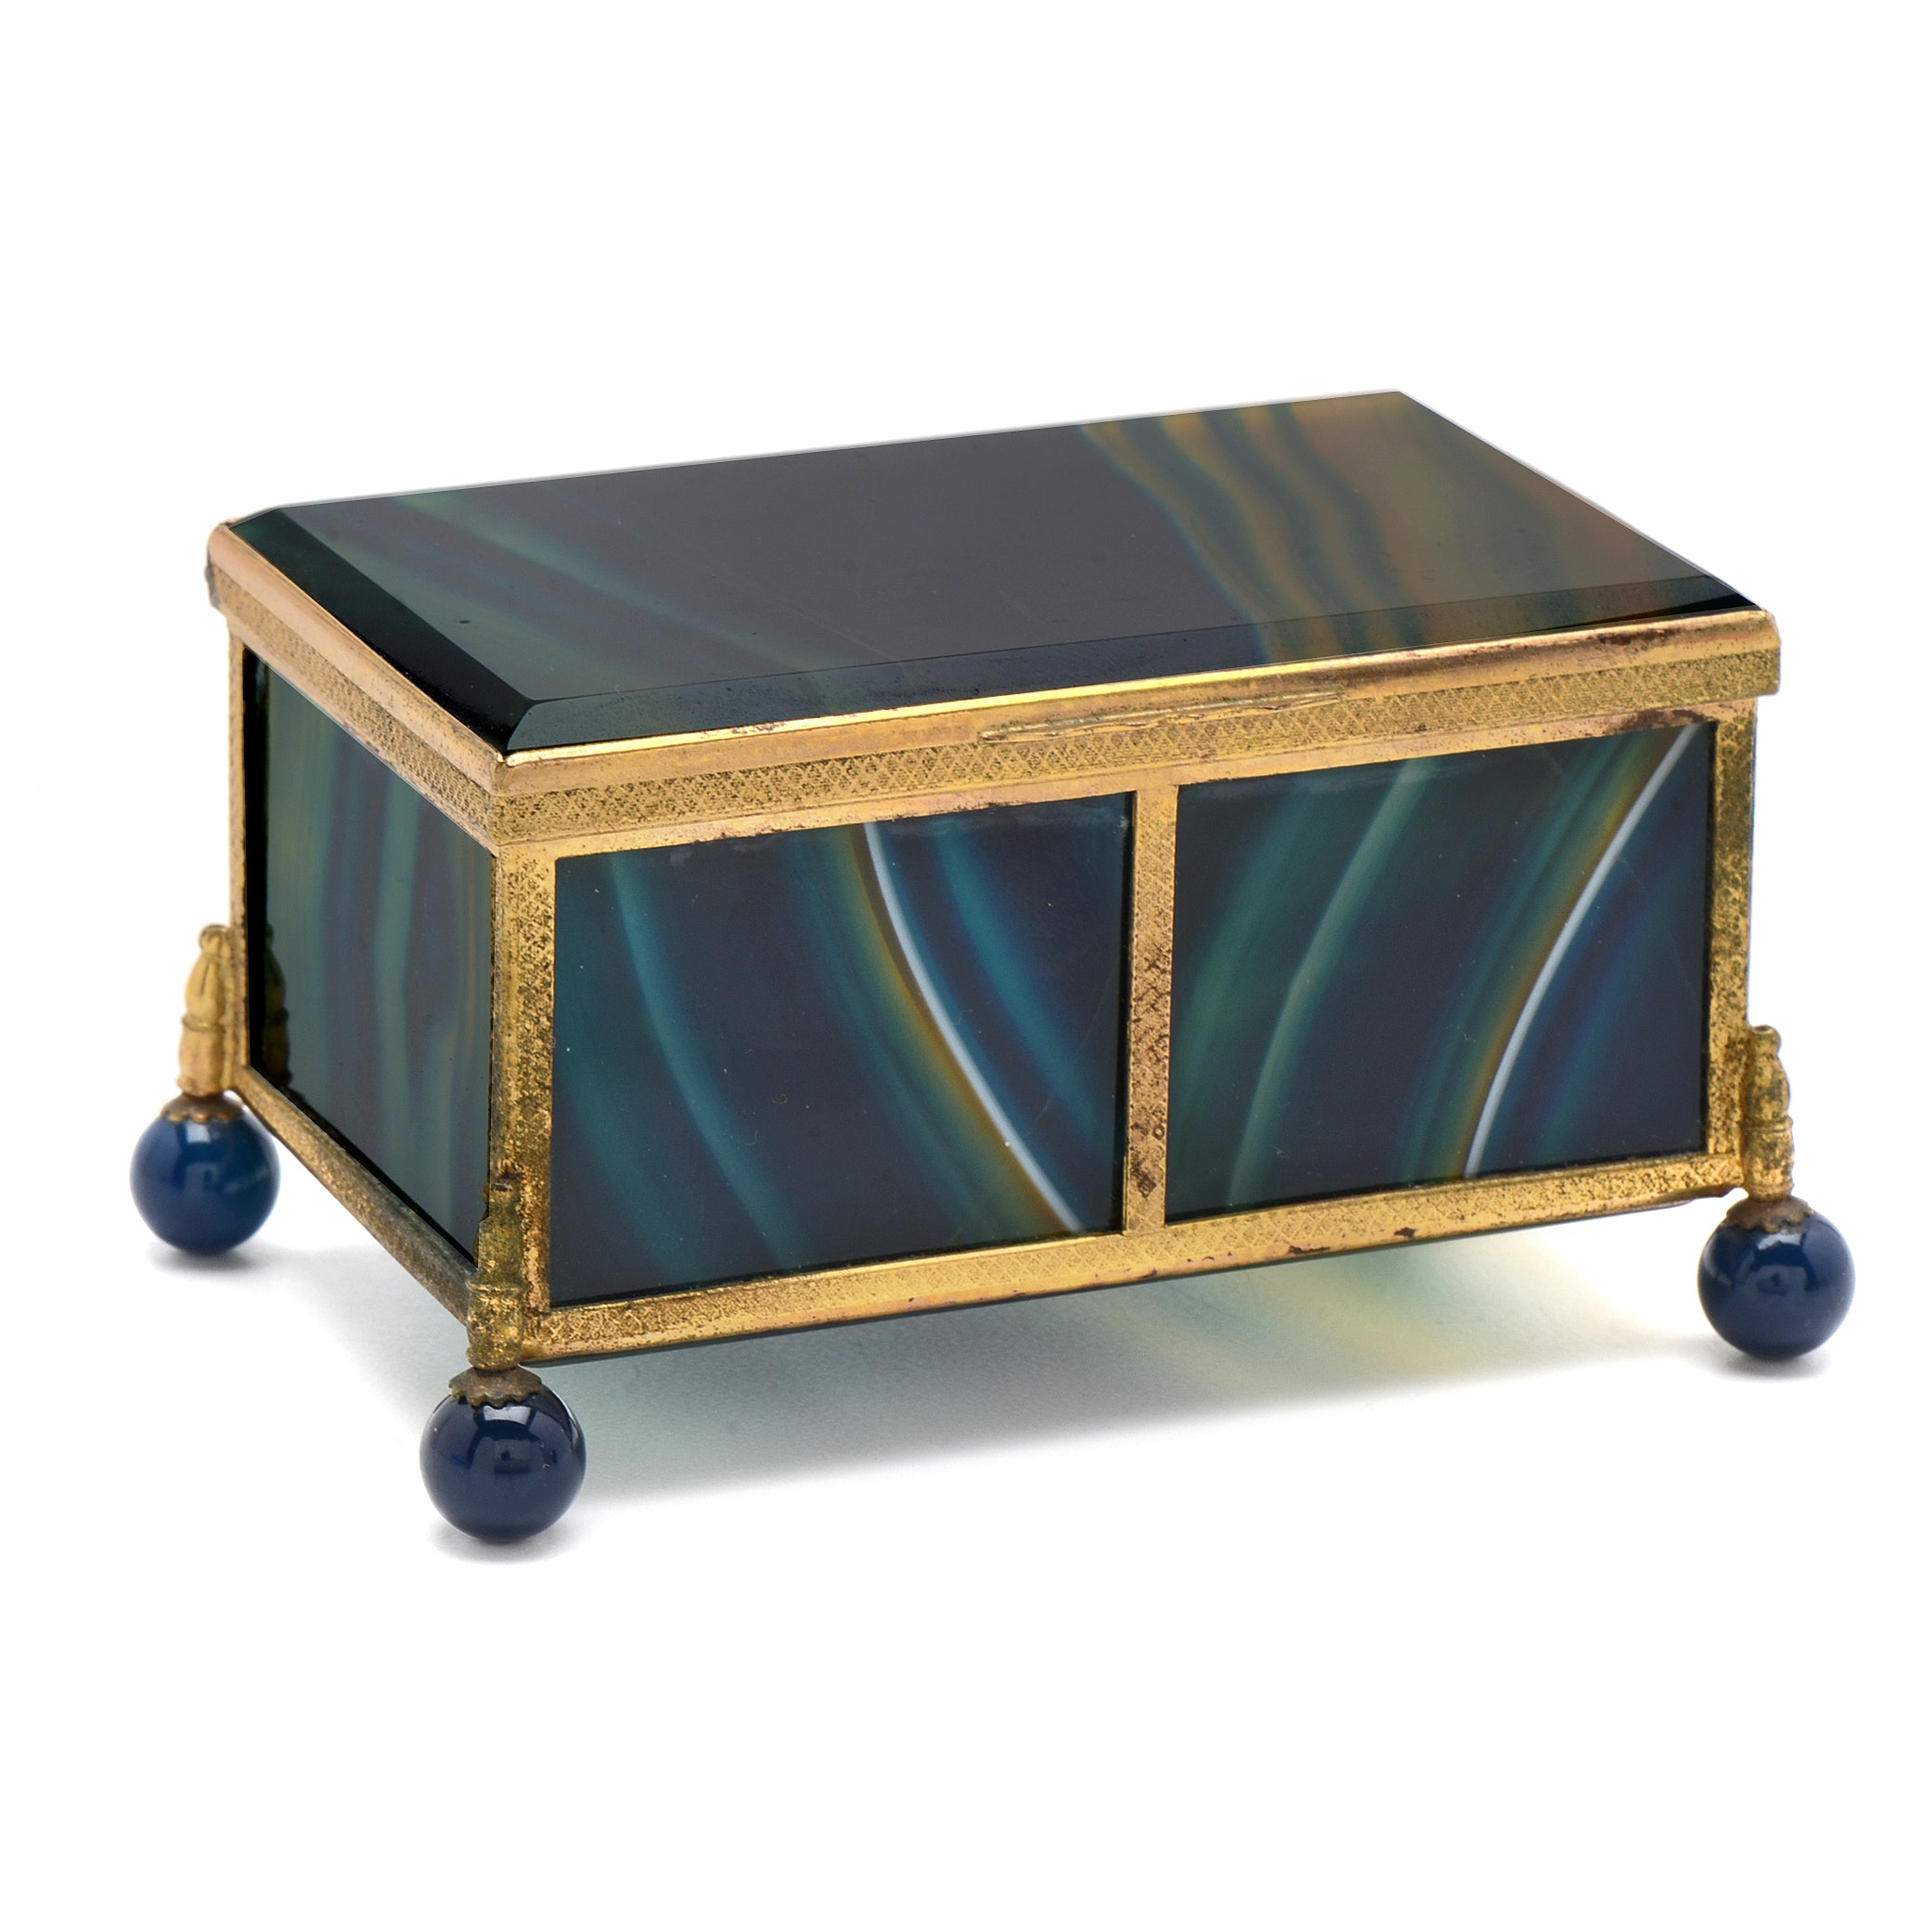 Blue Agate and Brass Coffer Form Box on Ball Feet